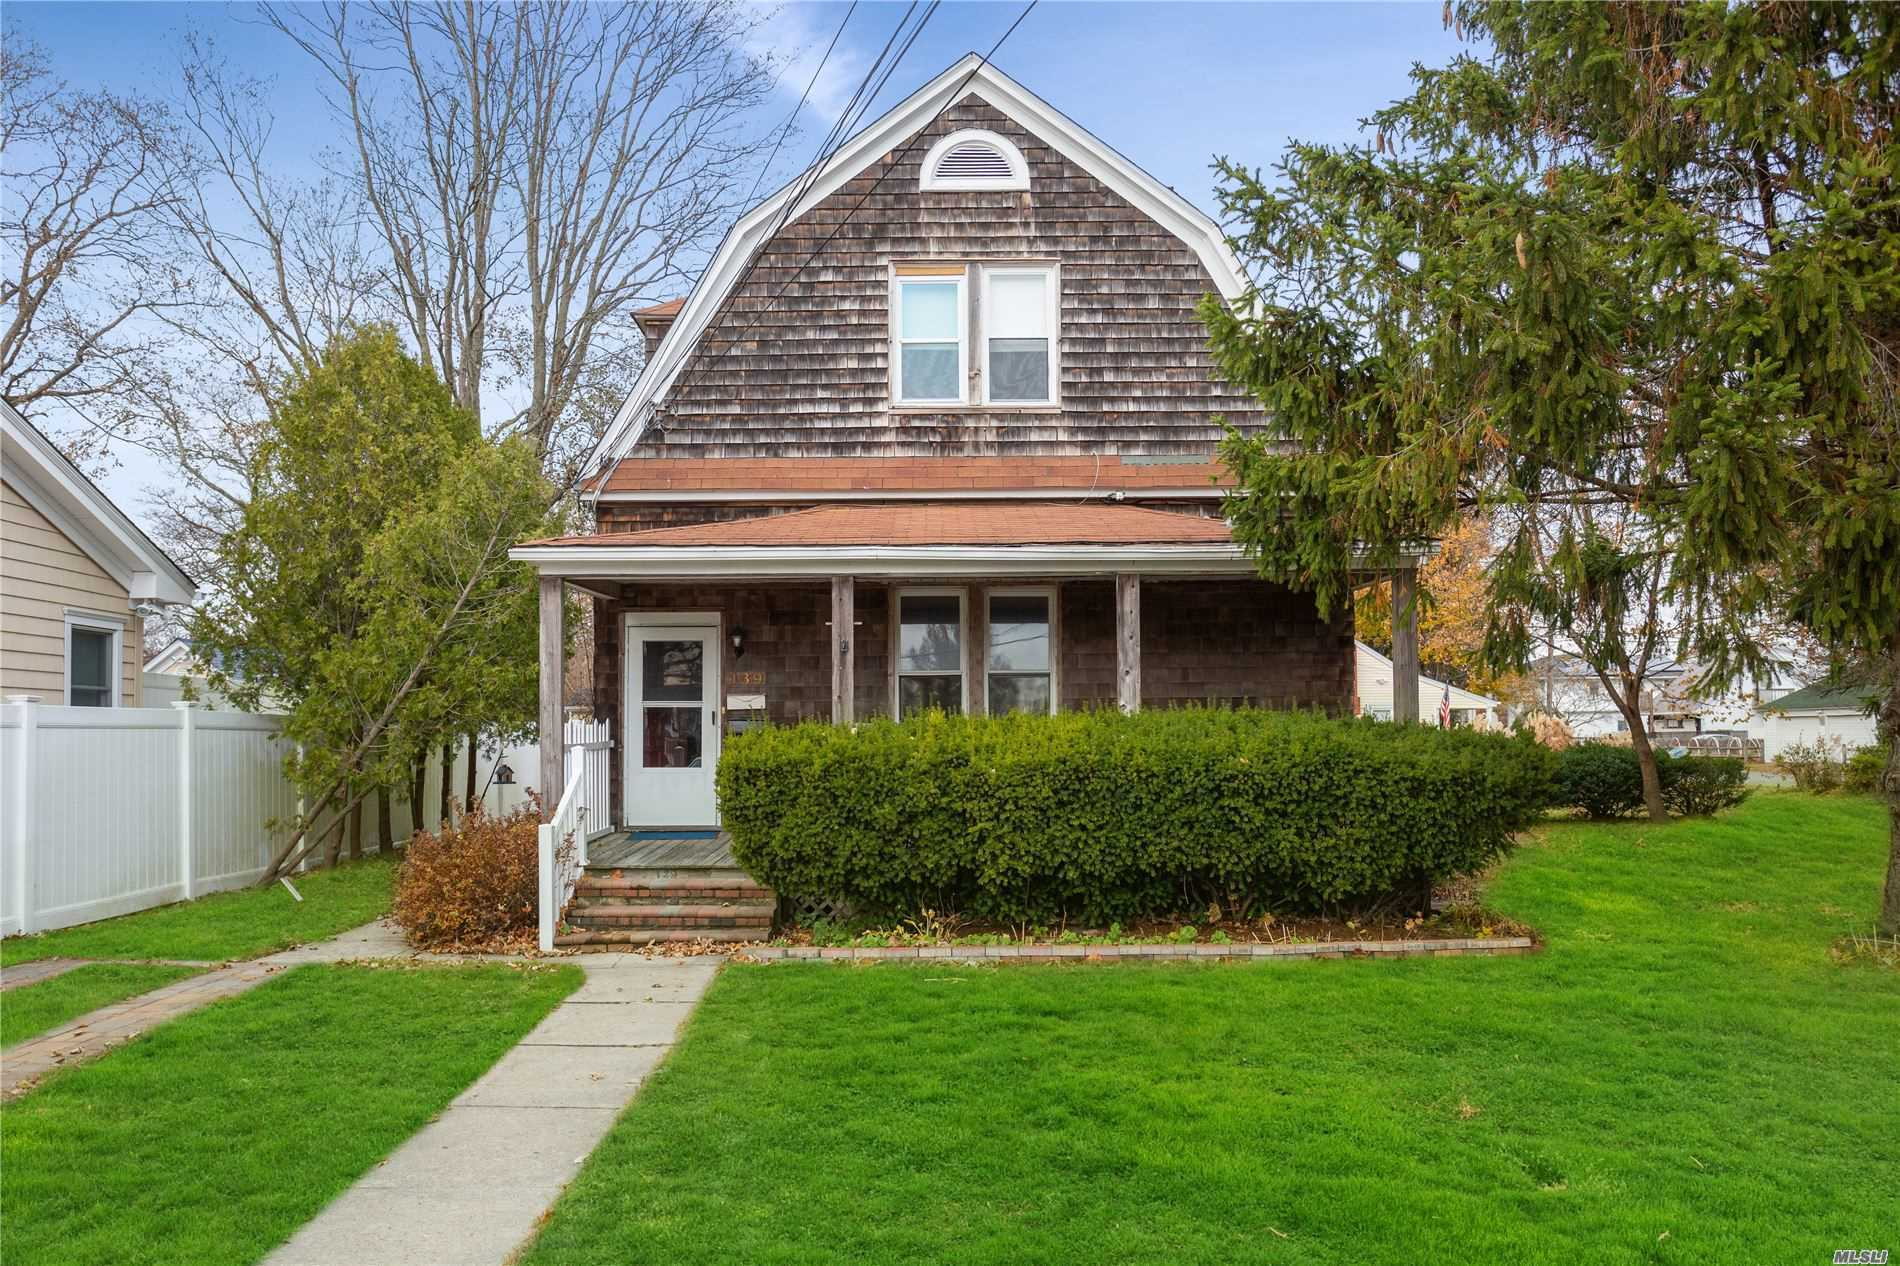 139 Oak St - Patchogue, New York